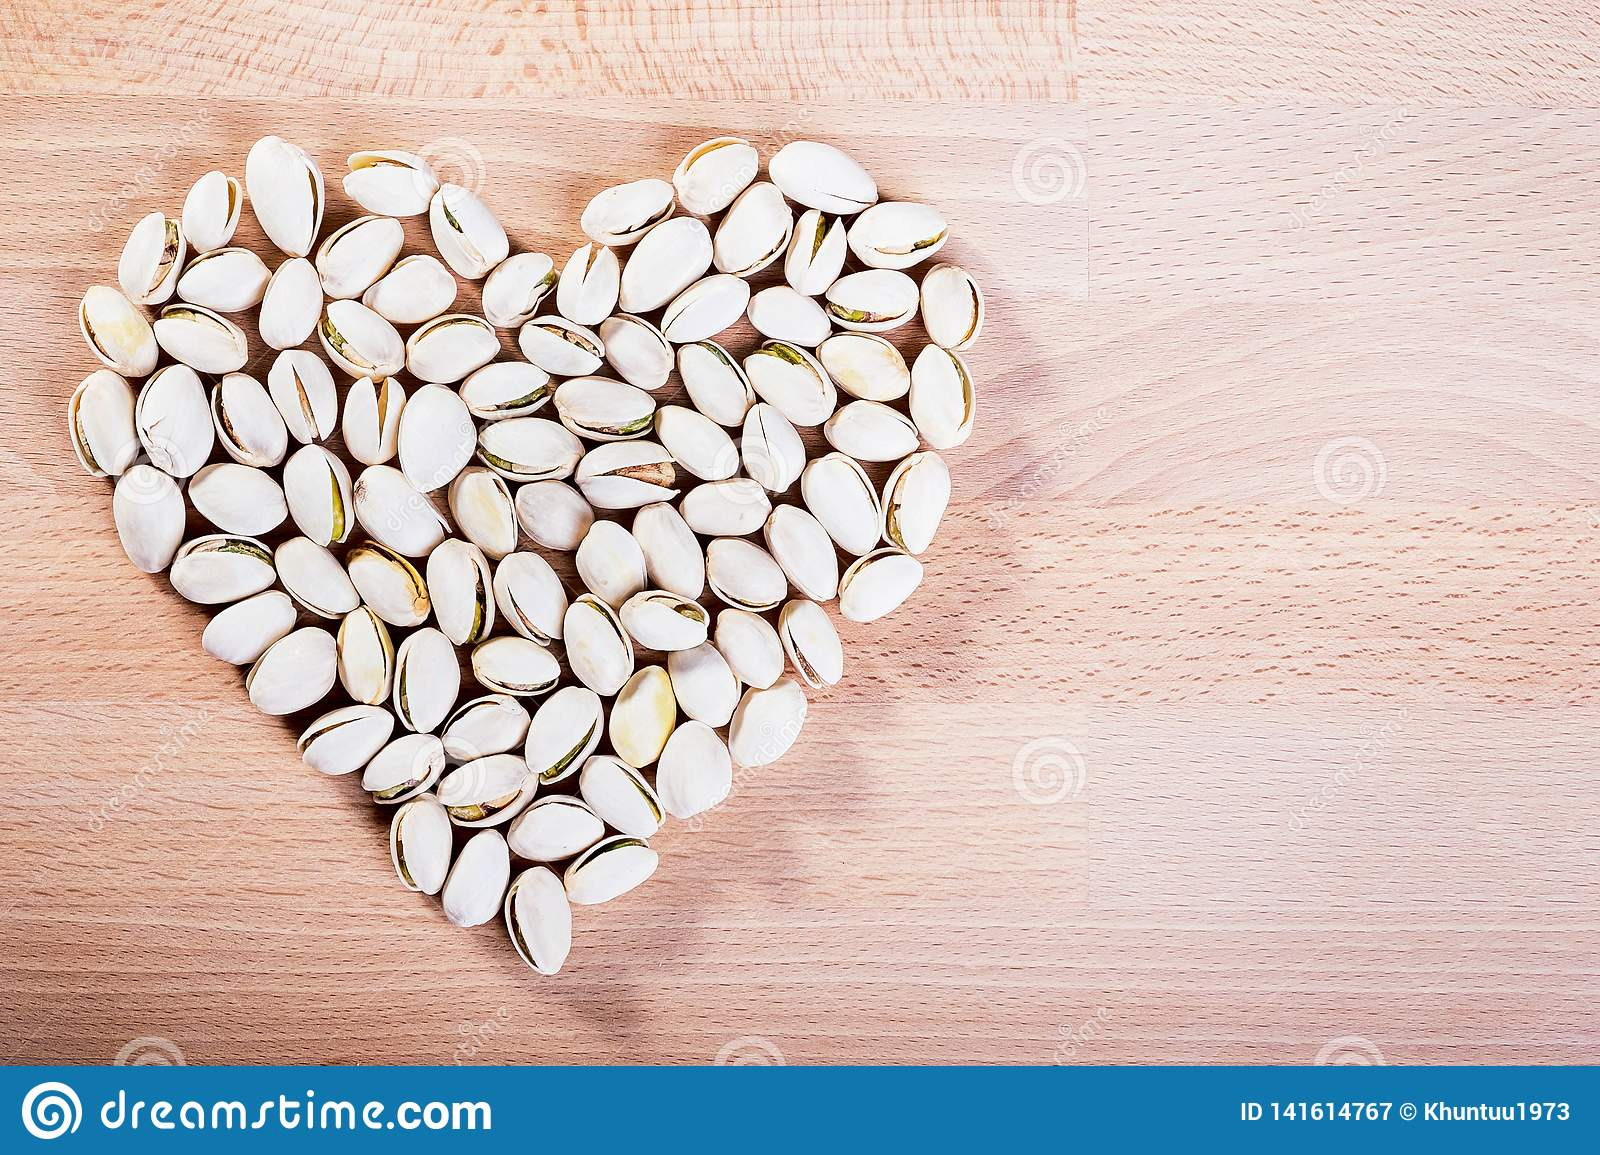 Pistachio nuts forming a heart-shape on wooden floor background